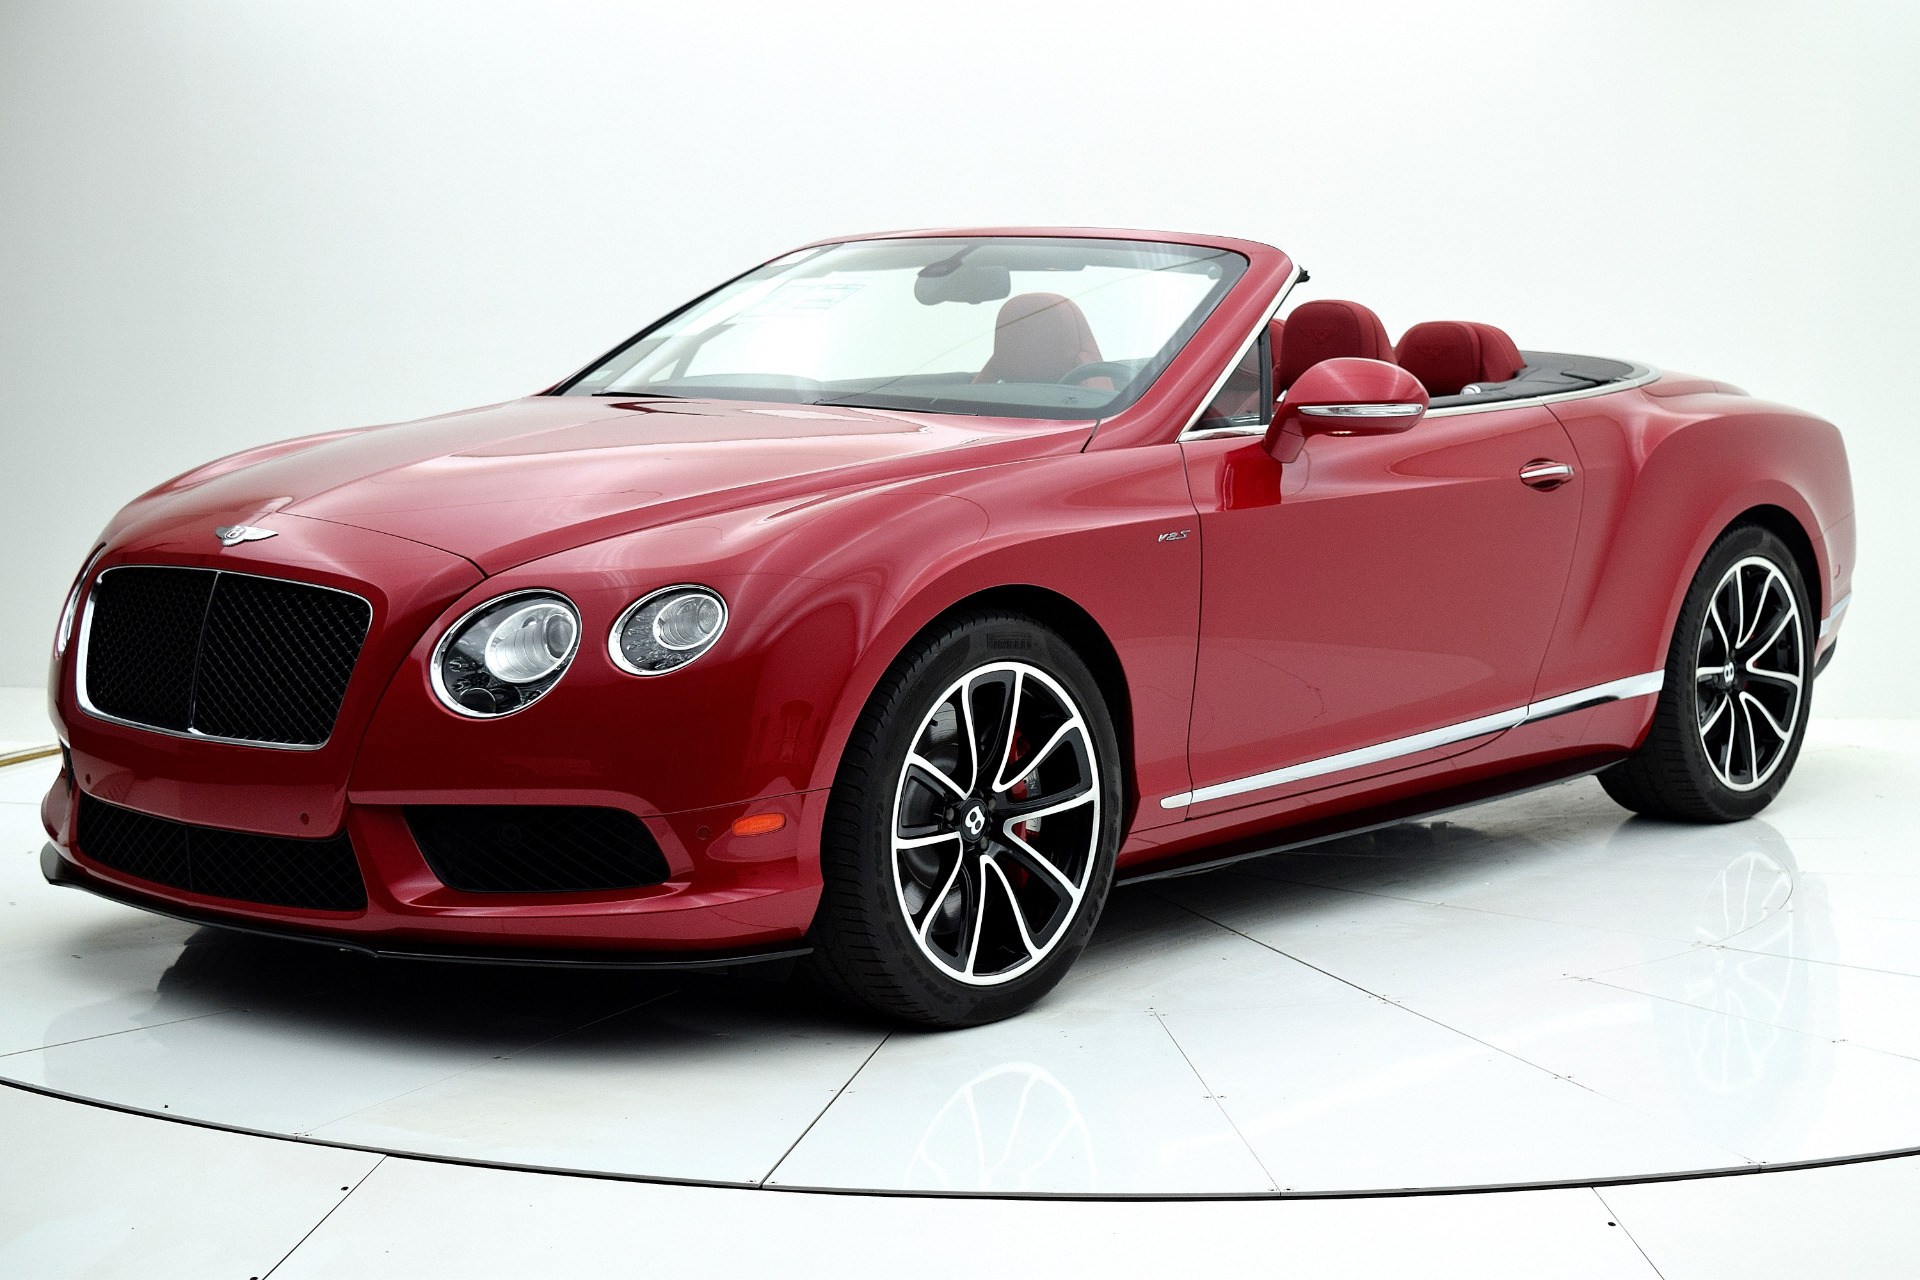 Bentley Continental GT V8 S 2014 Dragon Red For Sale $127880 Stock Number 1499JI